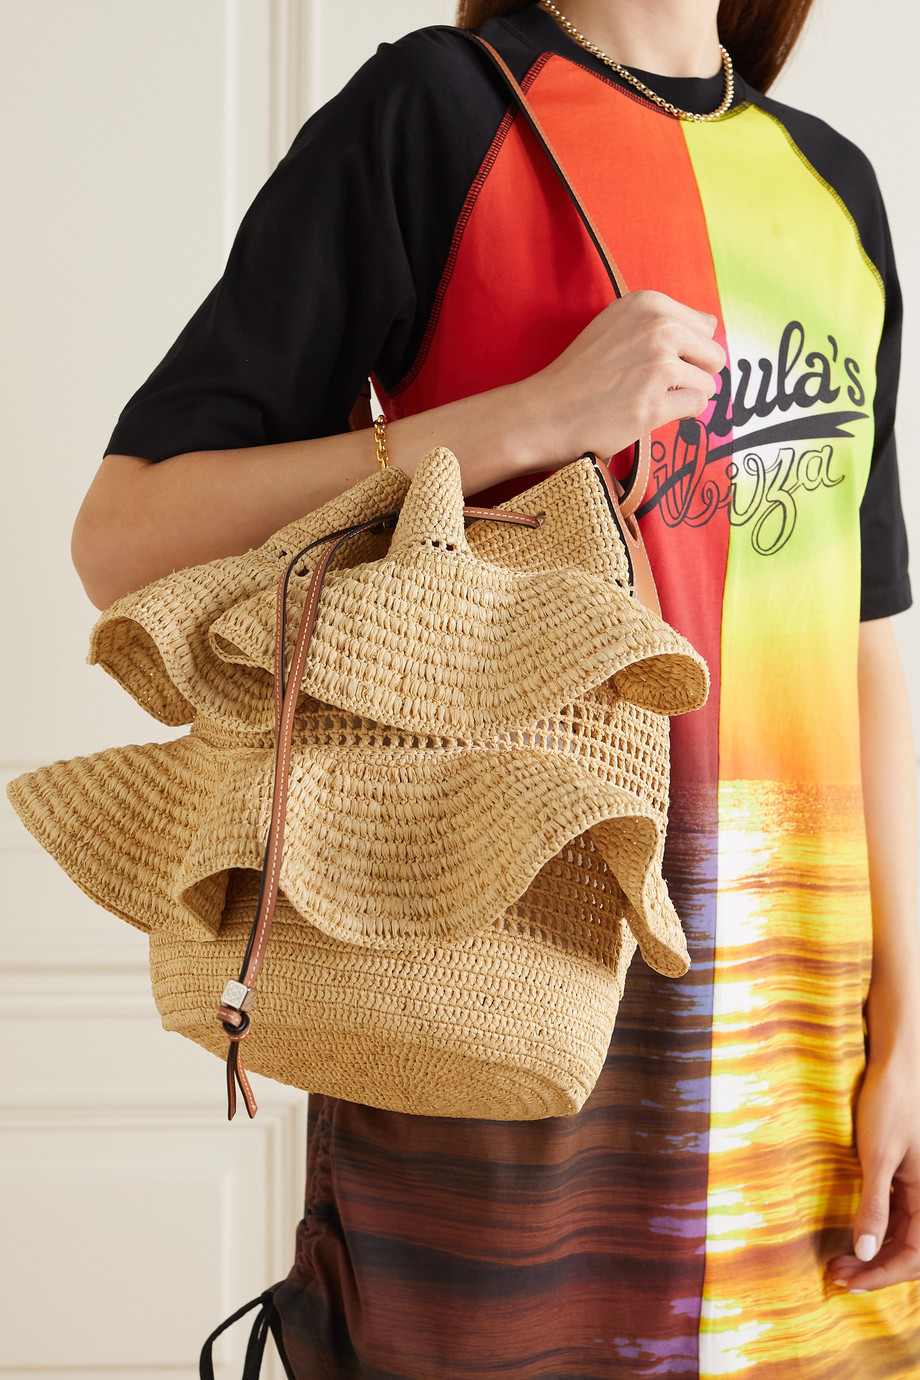 LOEWE + Paula's Ibiza Balloon ruffled leather-trimmed raffia shoulder bag